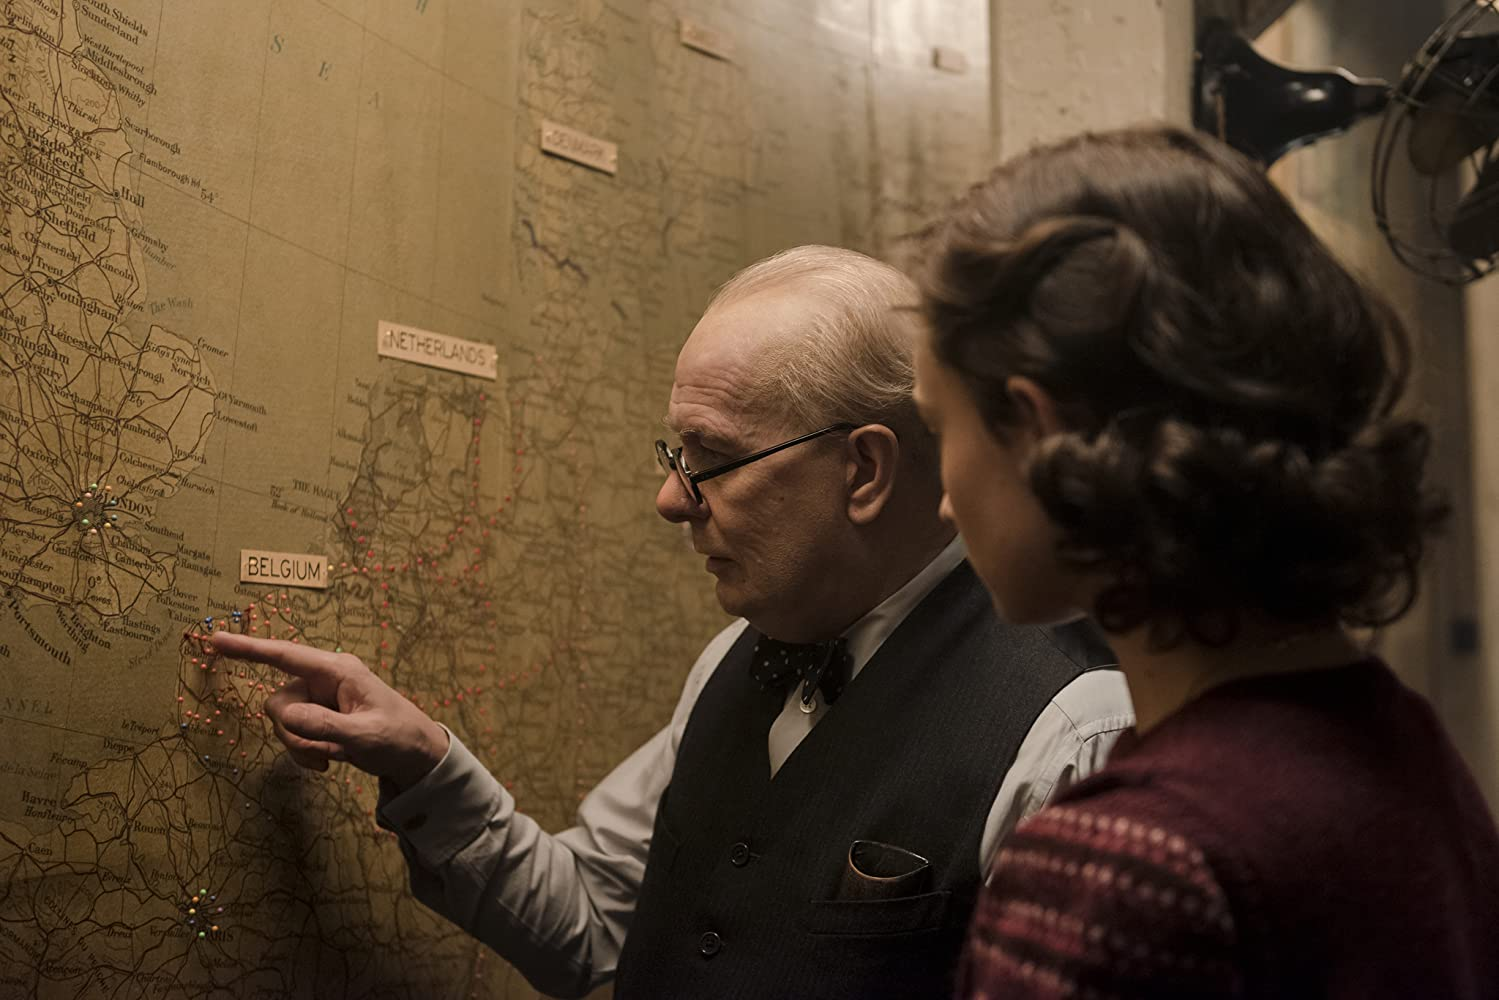 Winston Churchill pointing at the map